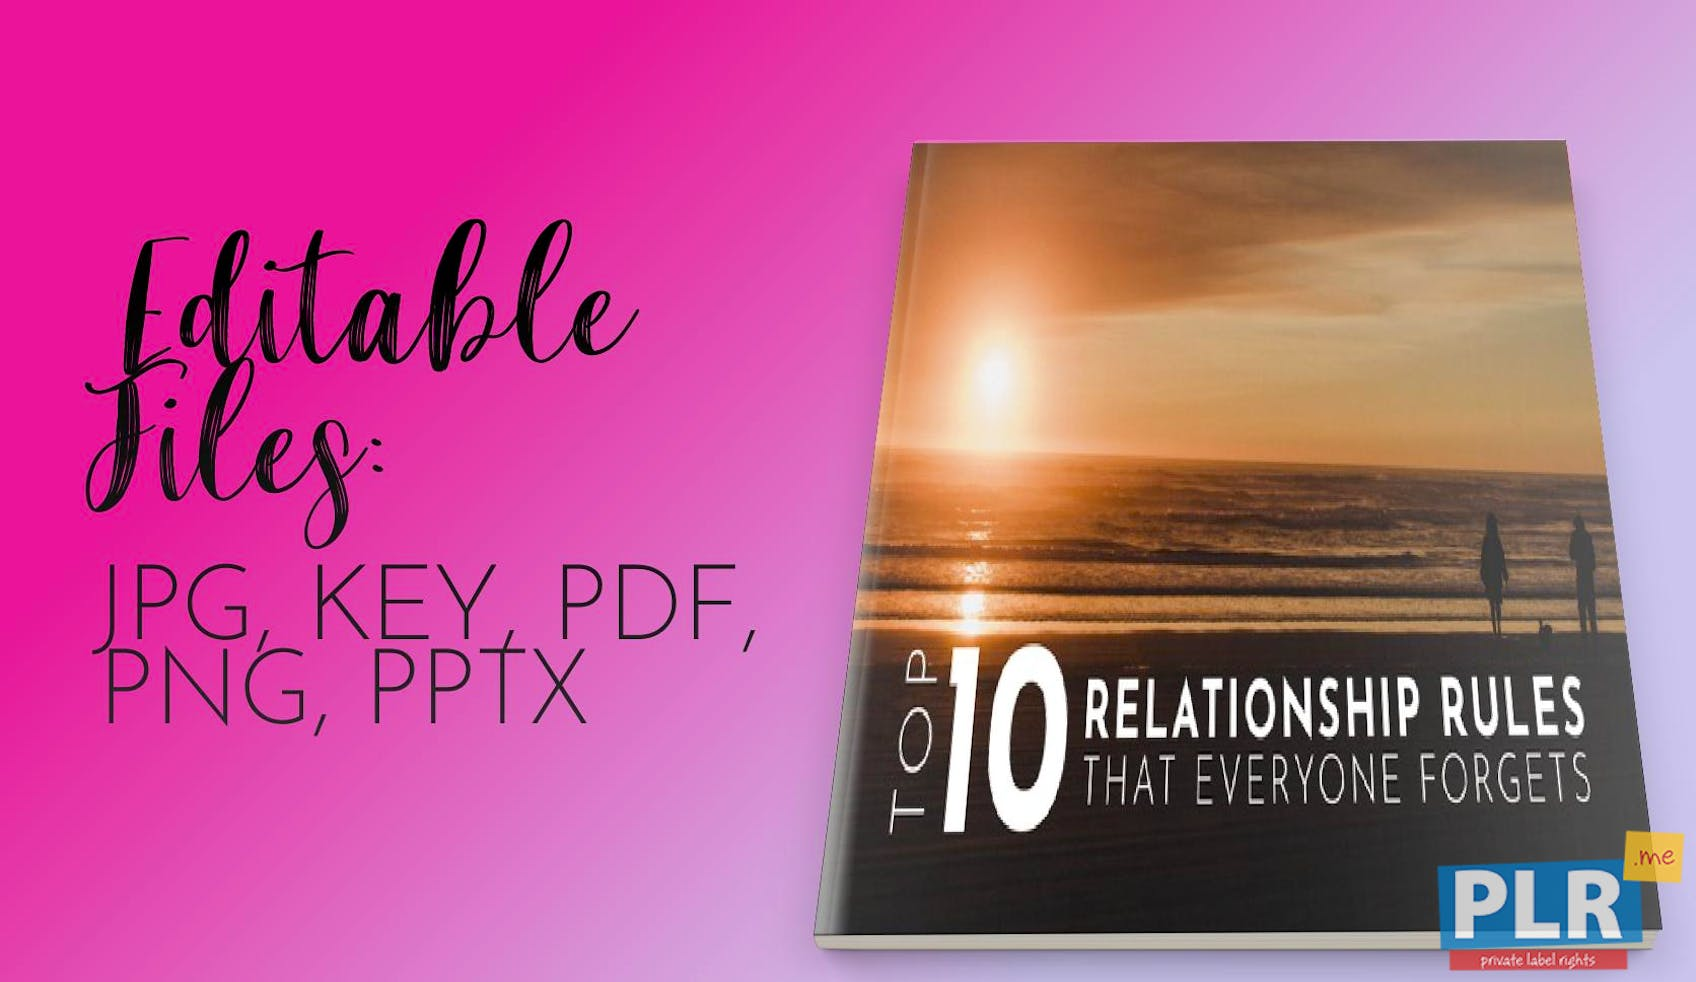 Top 10 Relationship Rules That Everyone Forgets Slide Deck